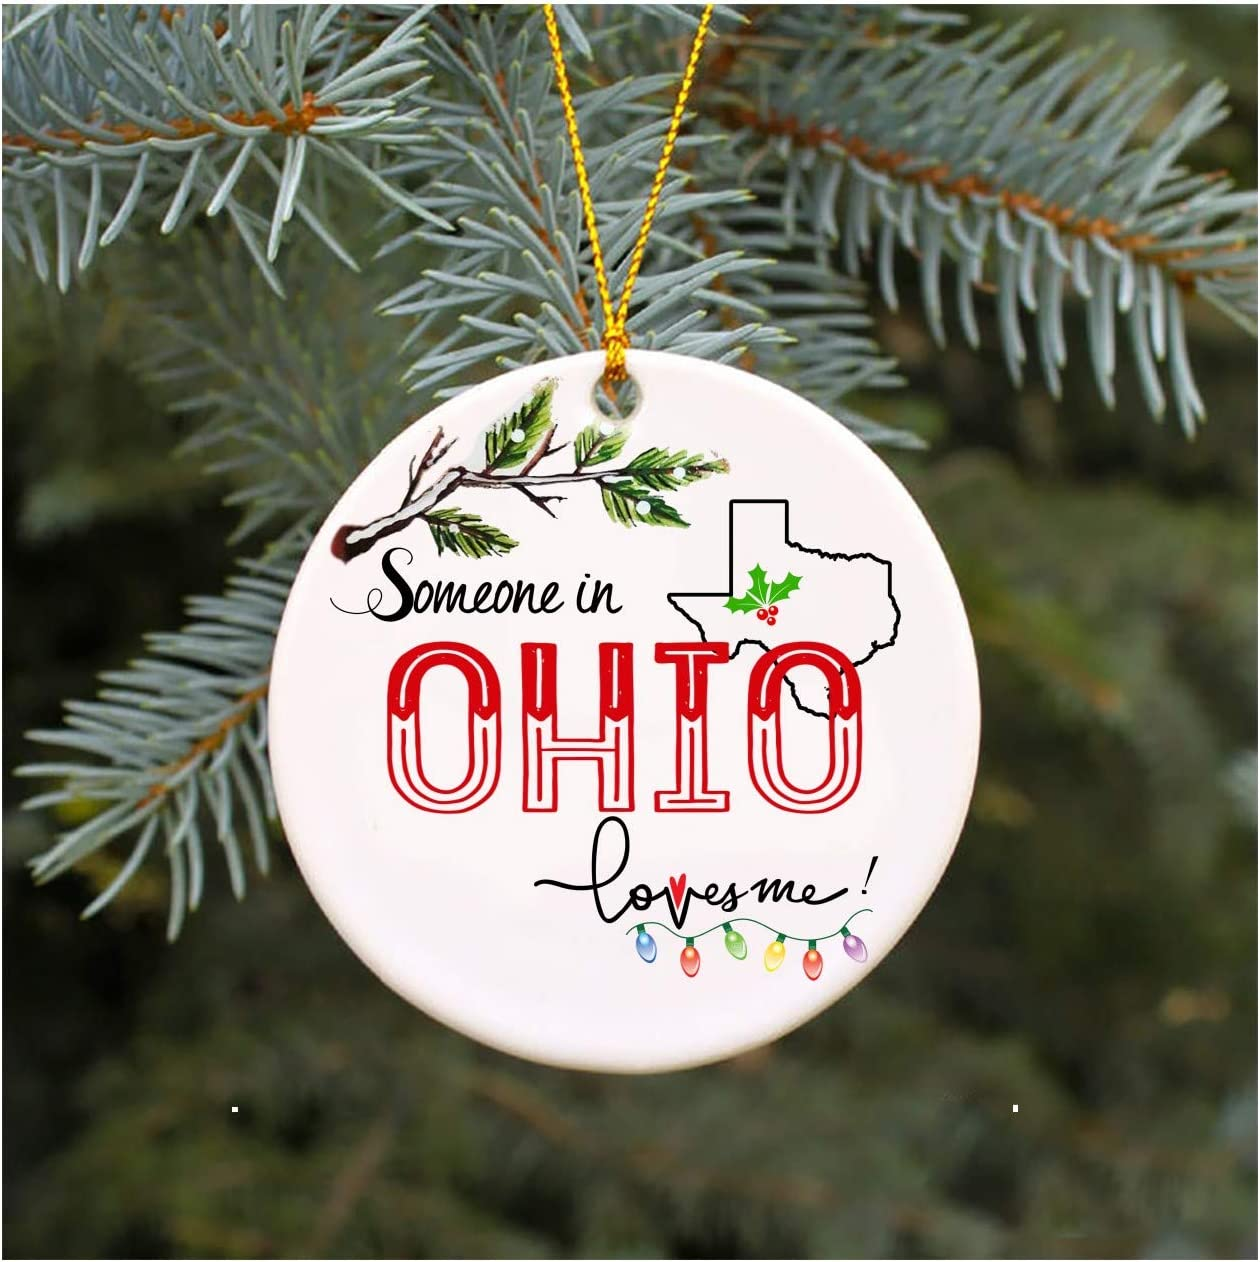 Amazon Com Christmas Ornaments 2020 Gift For Family Someone In Ohio Texas Loves Me Tx State Gifts Xmas Present Mom Dad Wife Husband Best Friend Mdf Plastic 3 Flat Circle Kitchen Dining